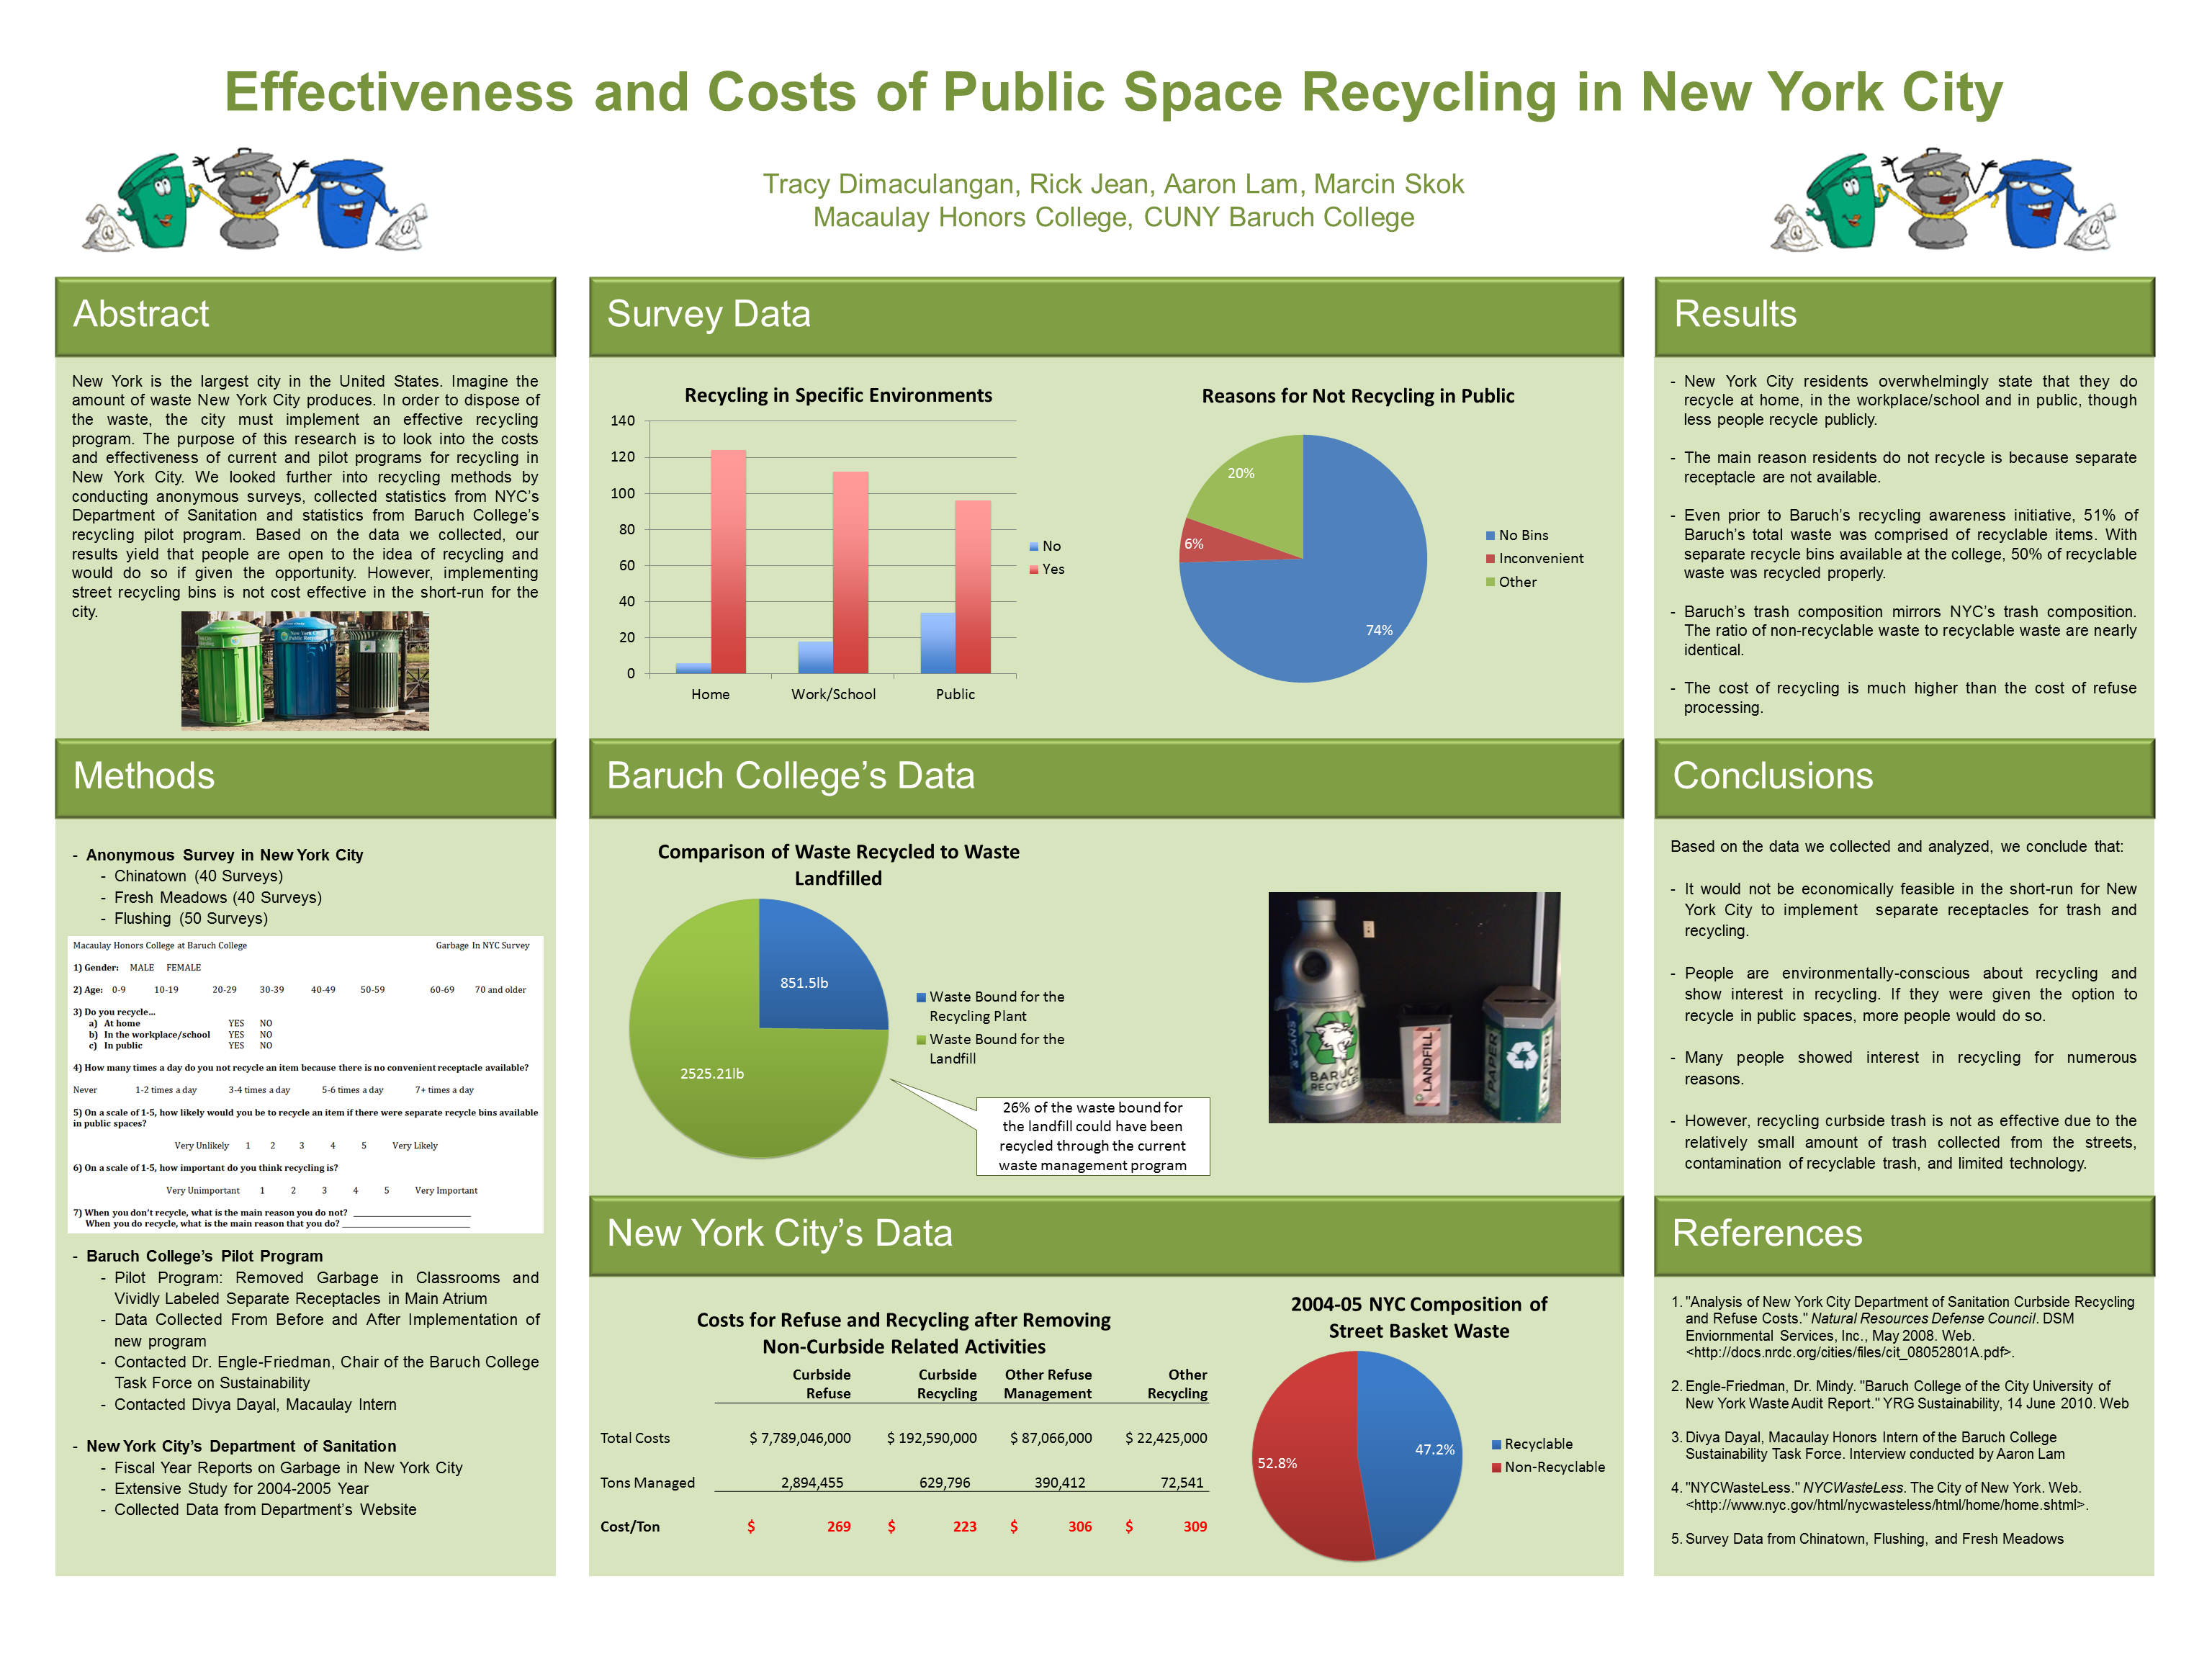 Pin By Julien Chastang On Science Posters Science Poster Recycle City Survey Data